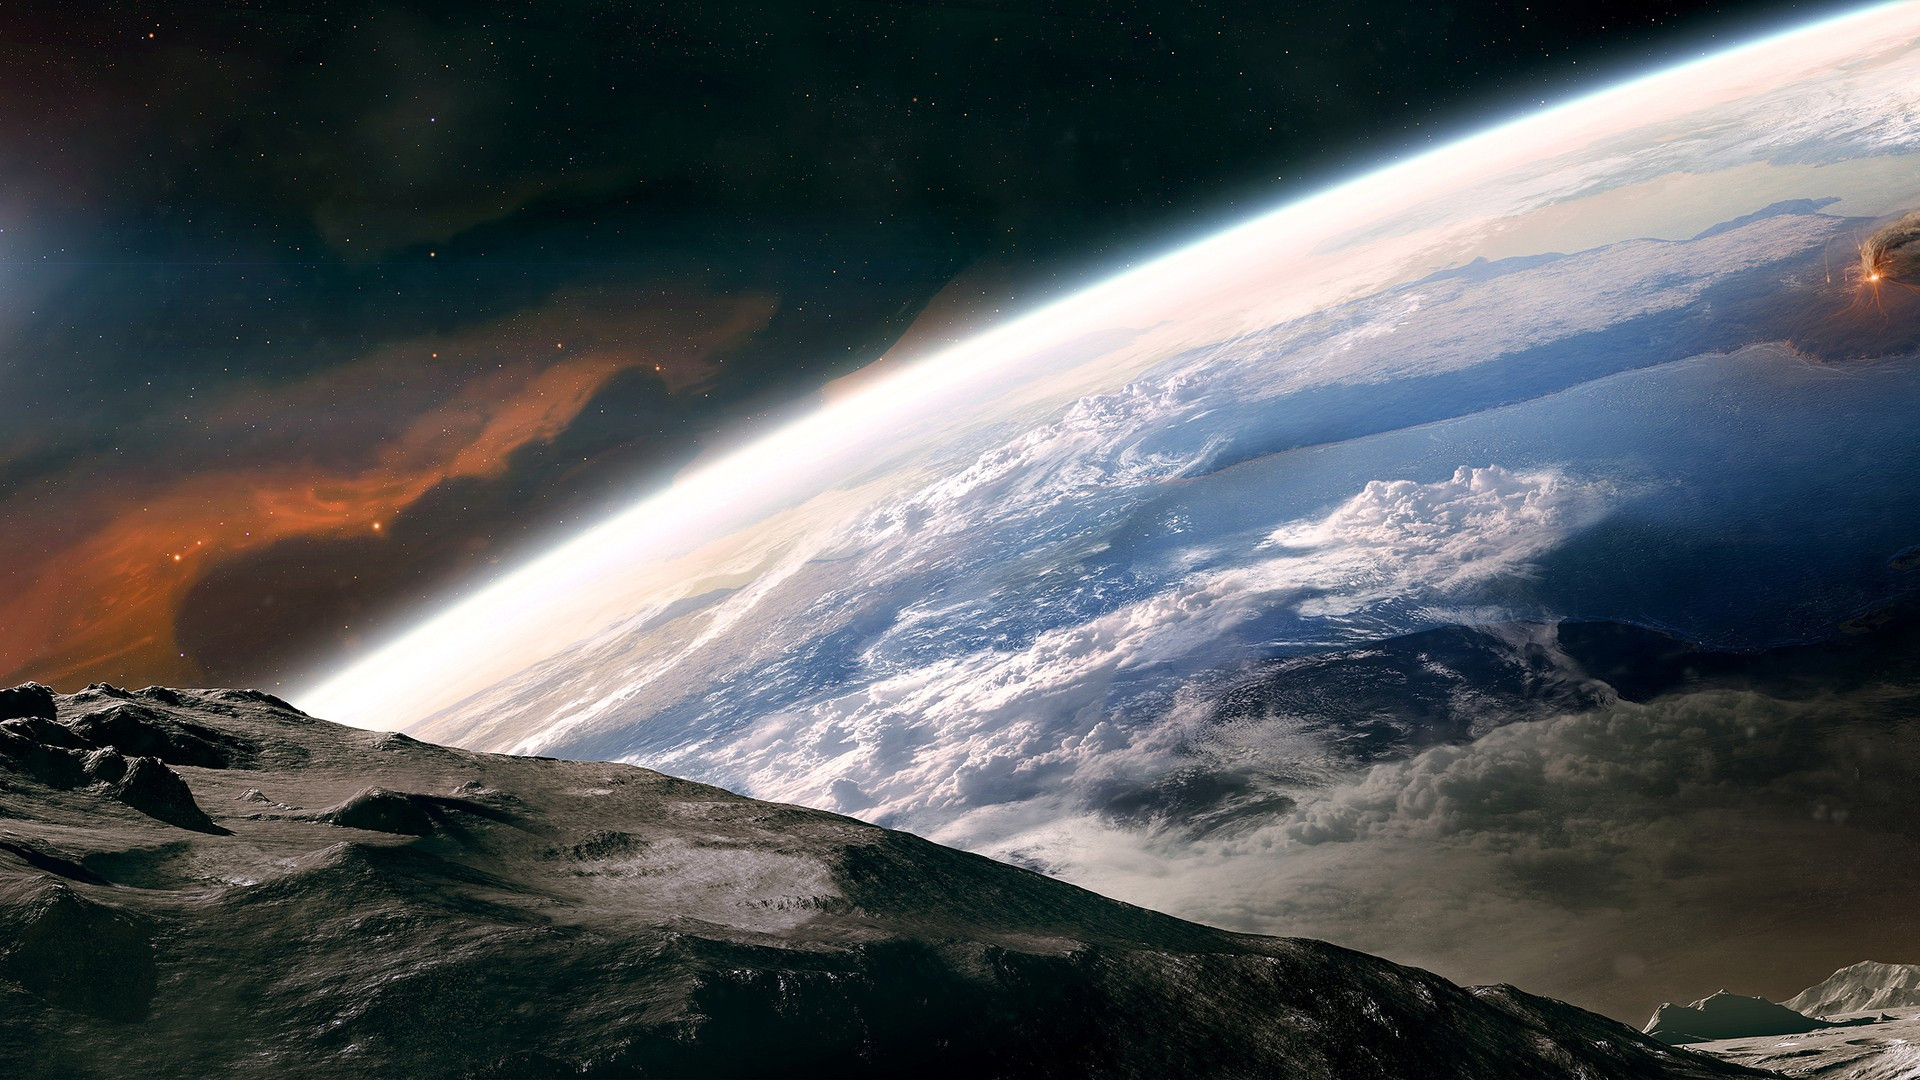 3D Digital Art Space Scene HD Wallpapers and Backgrounds